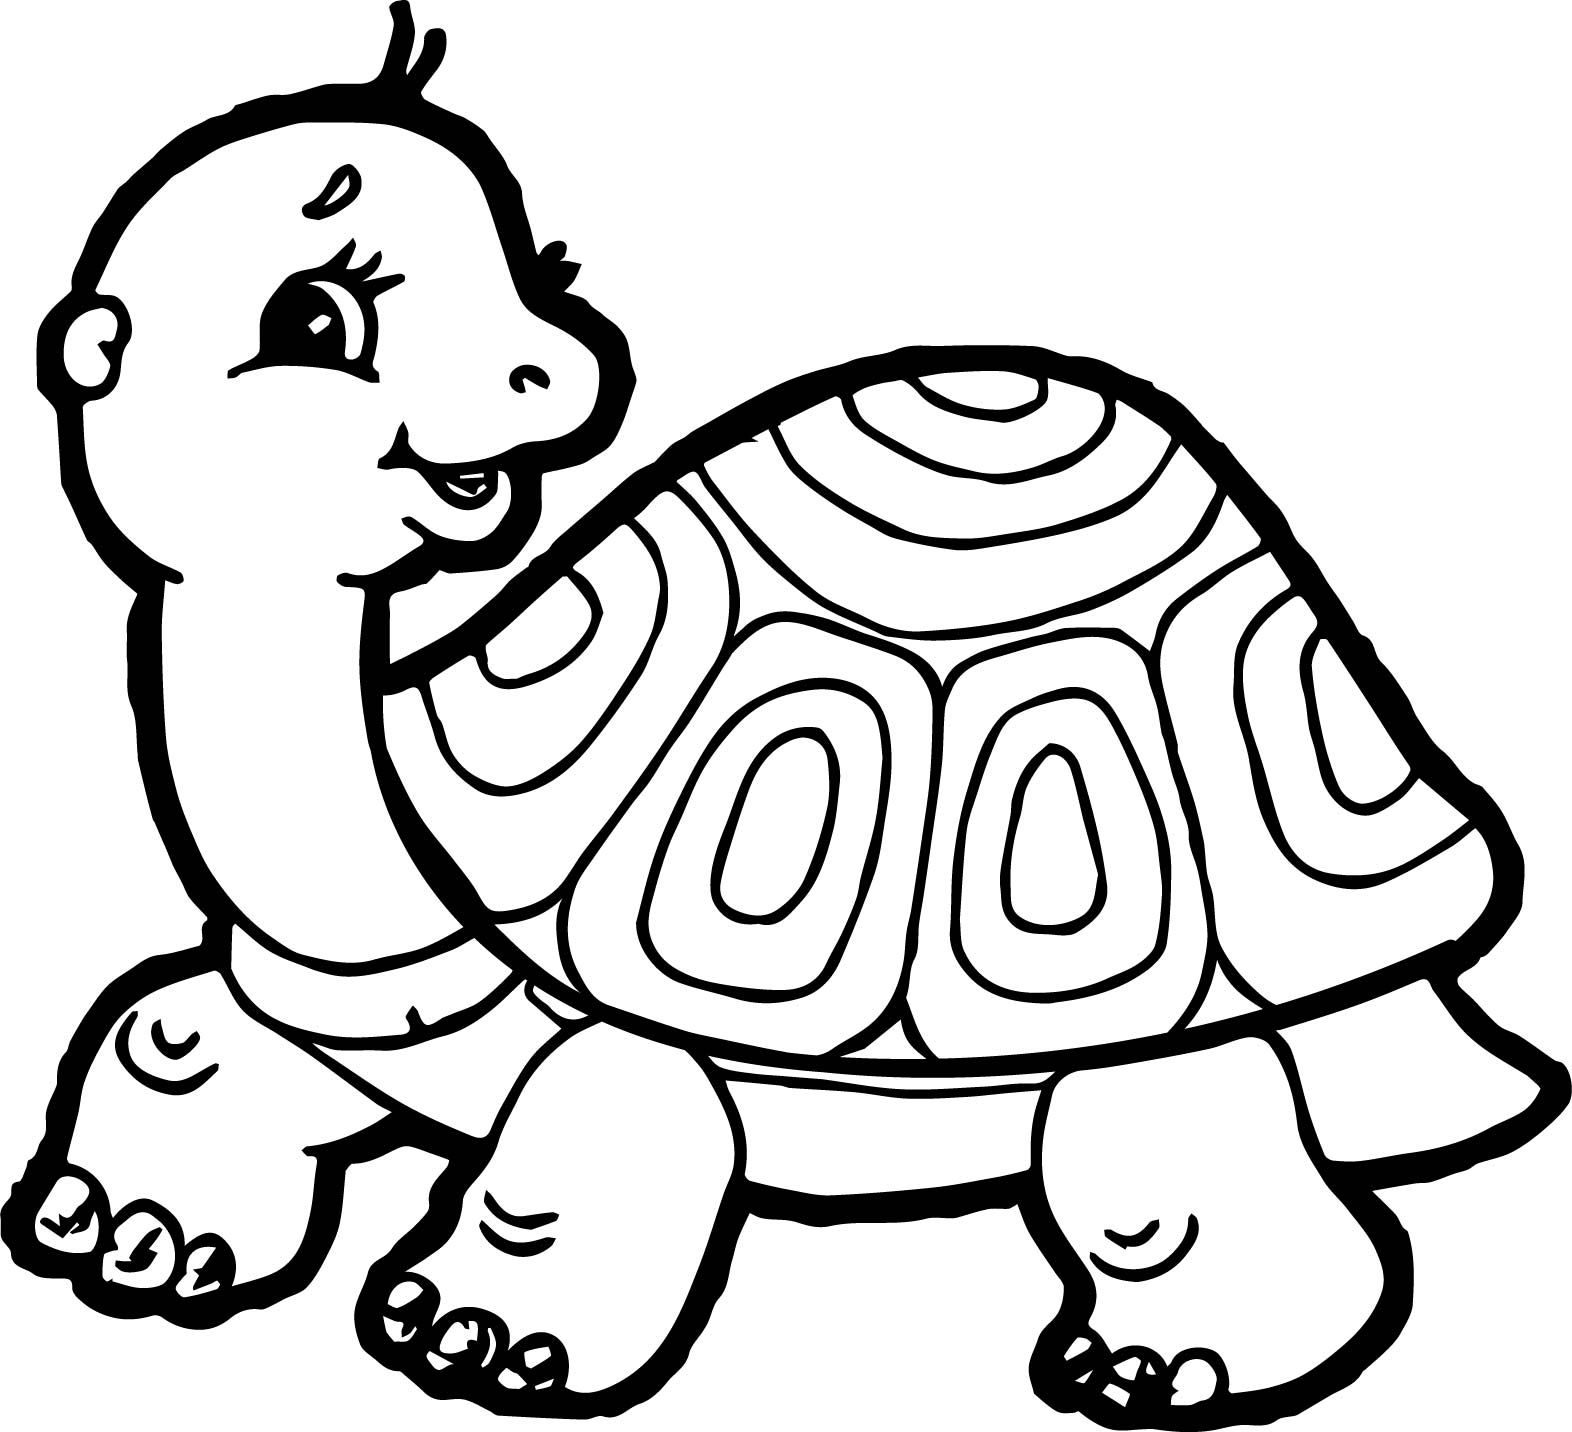 images of turtles to color detailed turtle coloring pages at getcoloringscom free to color of turtles images